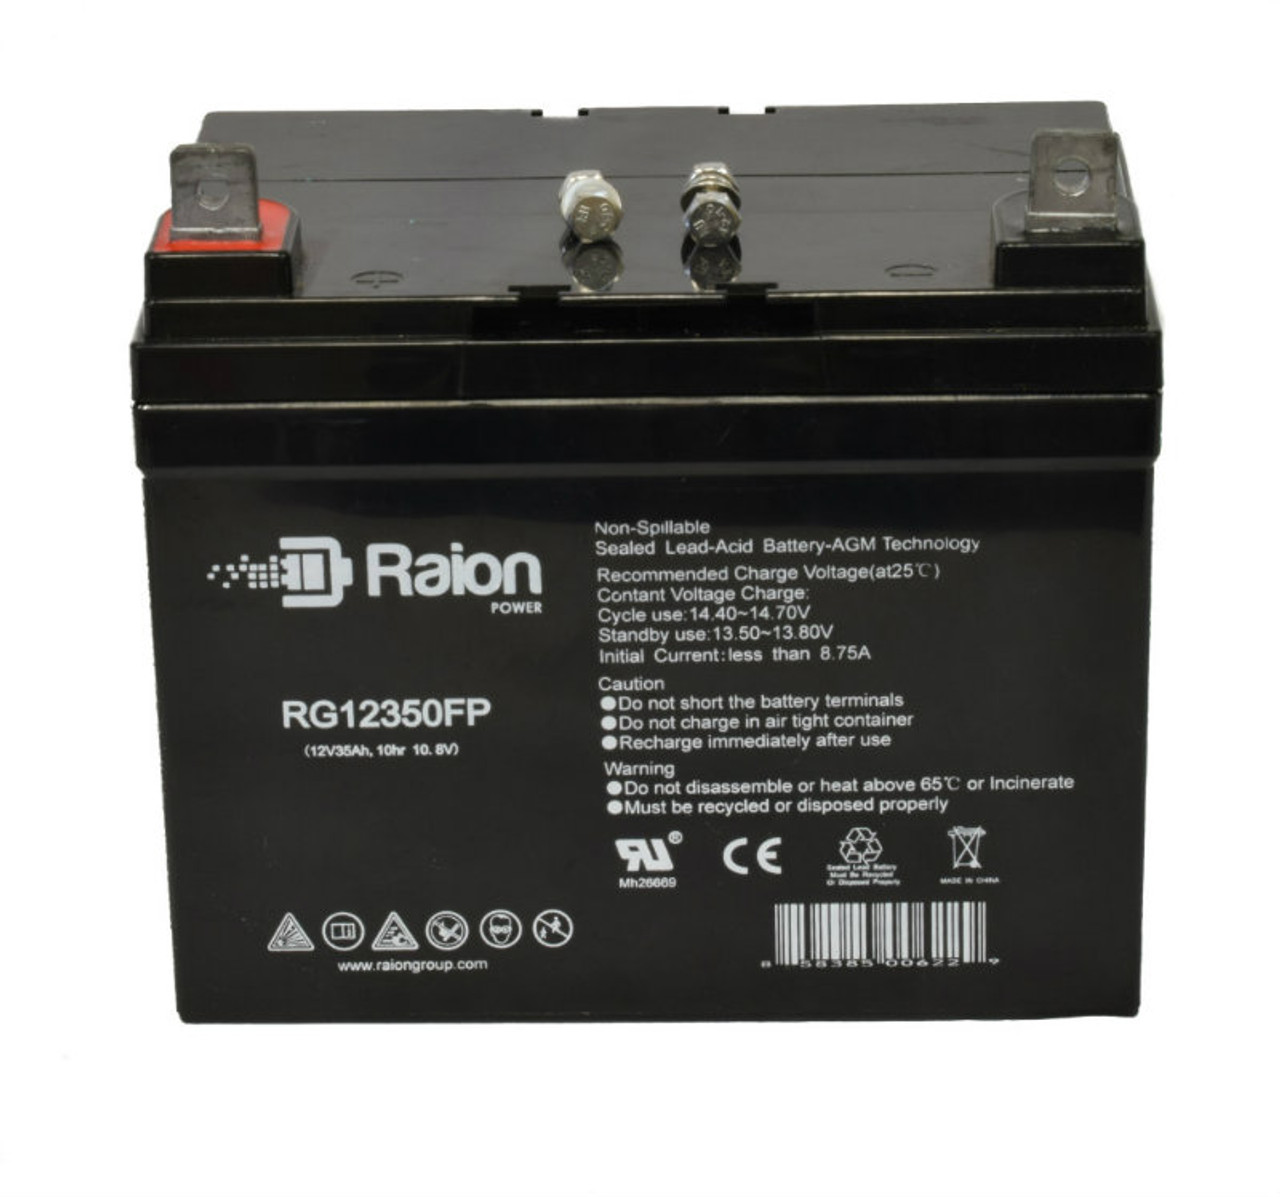 RG12350FP Sealed Lead Acid Battery Pack For Golden Technology Compass GP600 CC U1 Mobility Scooter